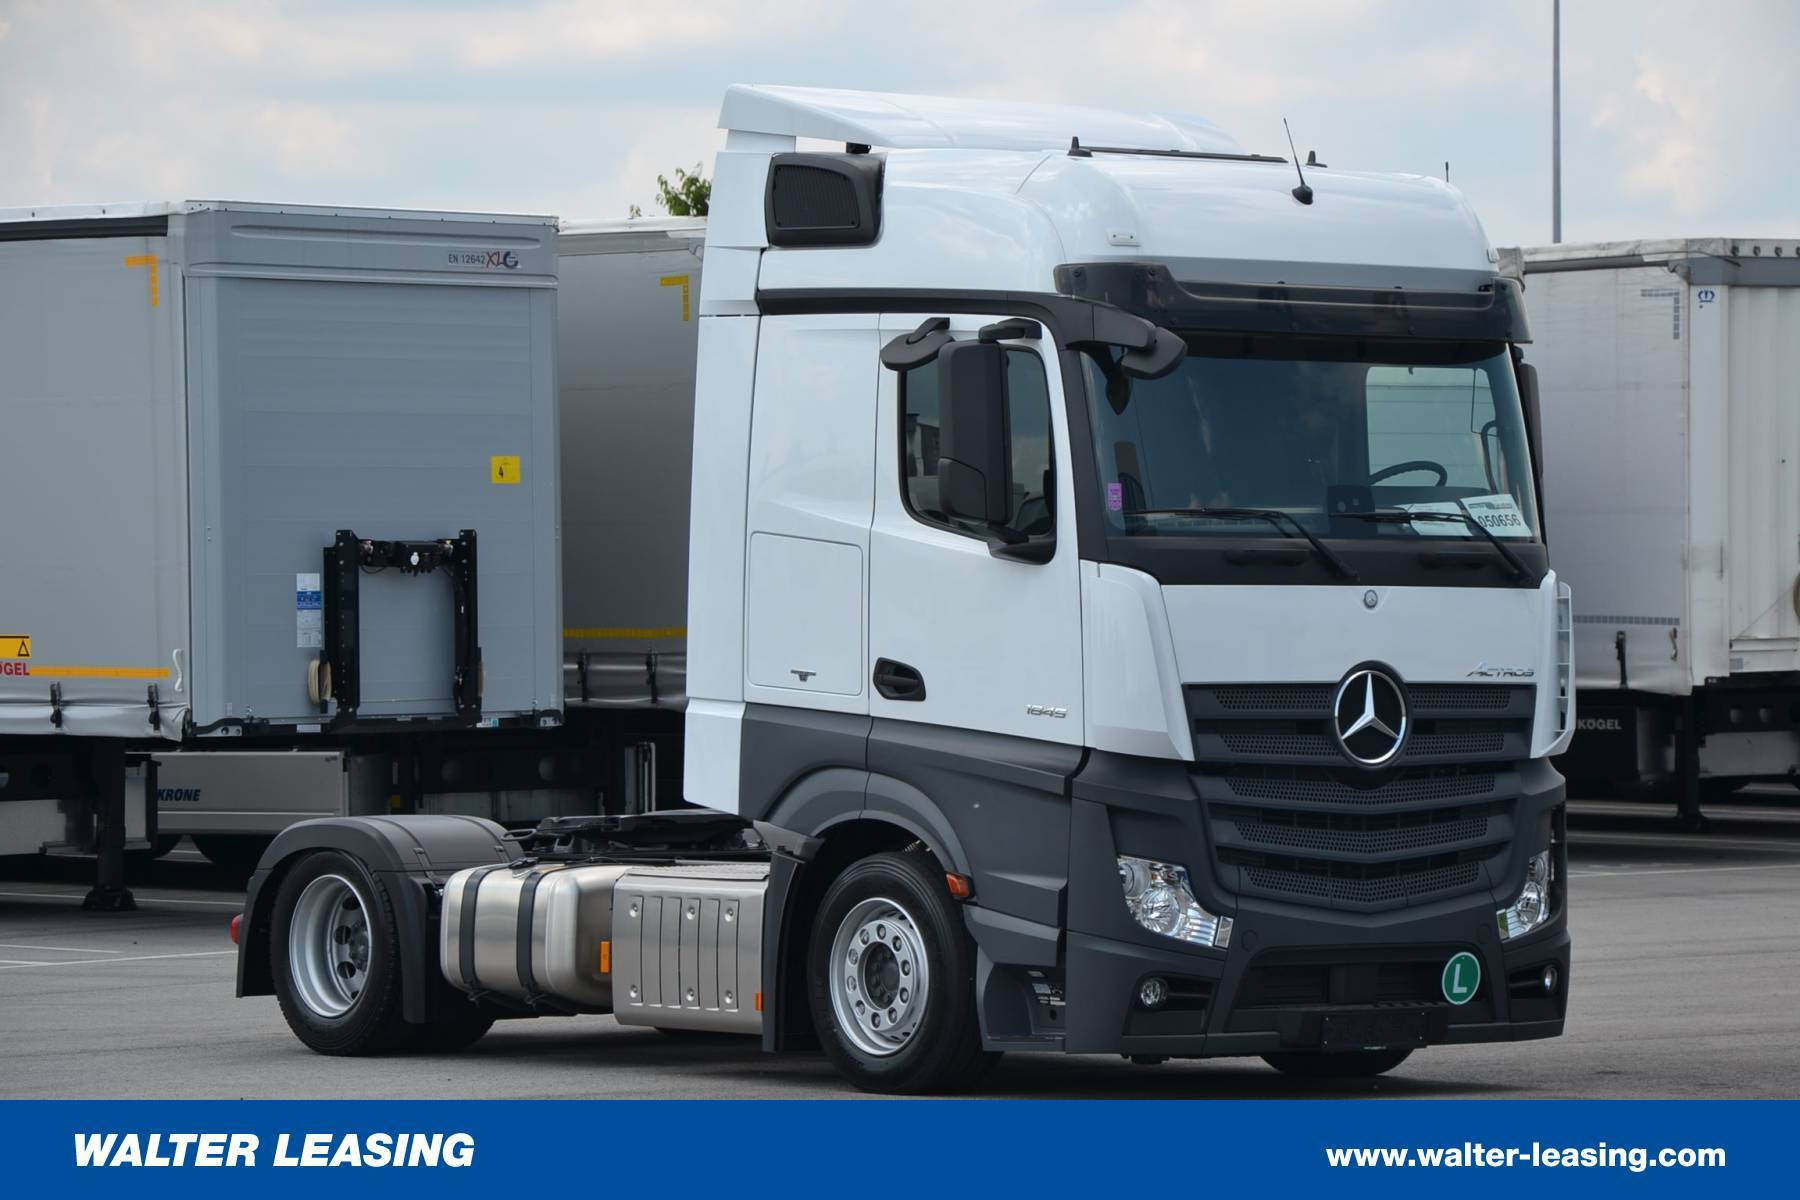 Man Tgx 2018 >> Mercedes Benz Mega tractor unit Actros 1845 LSnRL - new - WALTER LEASING